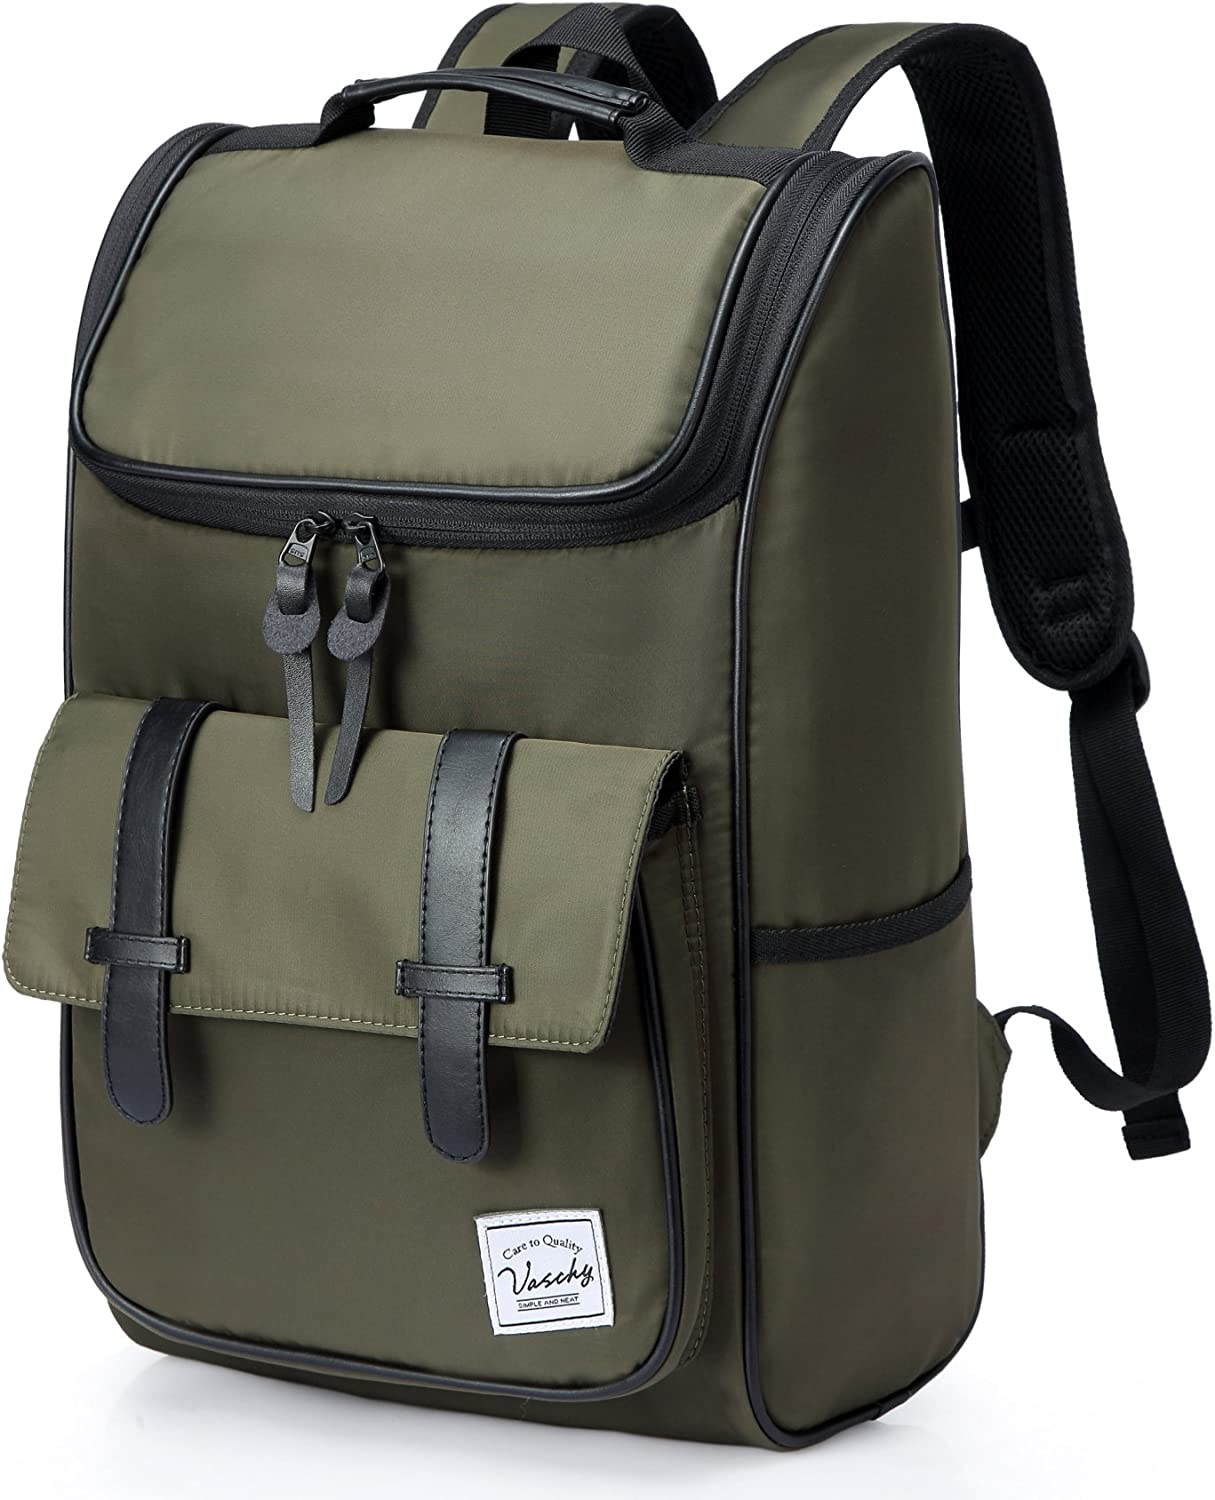 Backpack for men,Vaschy Vintage Water Resistant Daypack Rucksack College School Backpack with Padded 15.6 inch Laptop Compartment Green